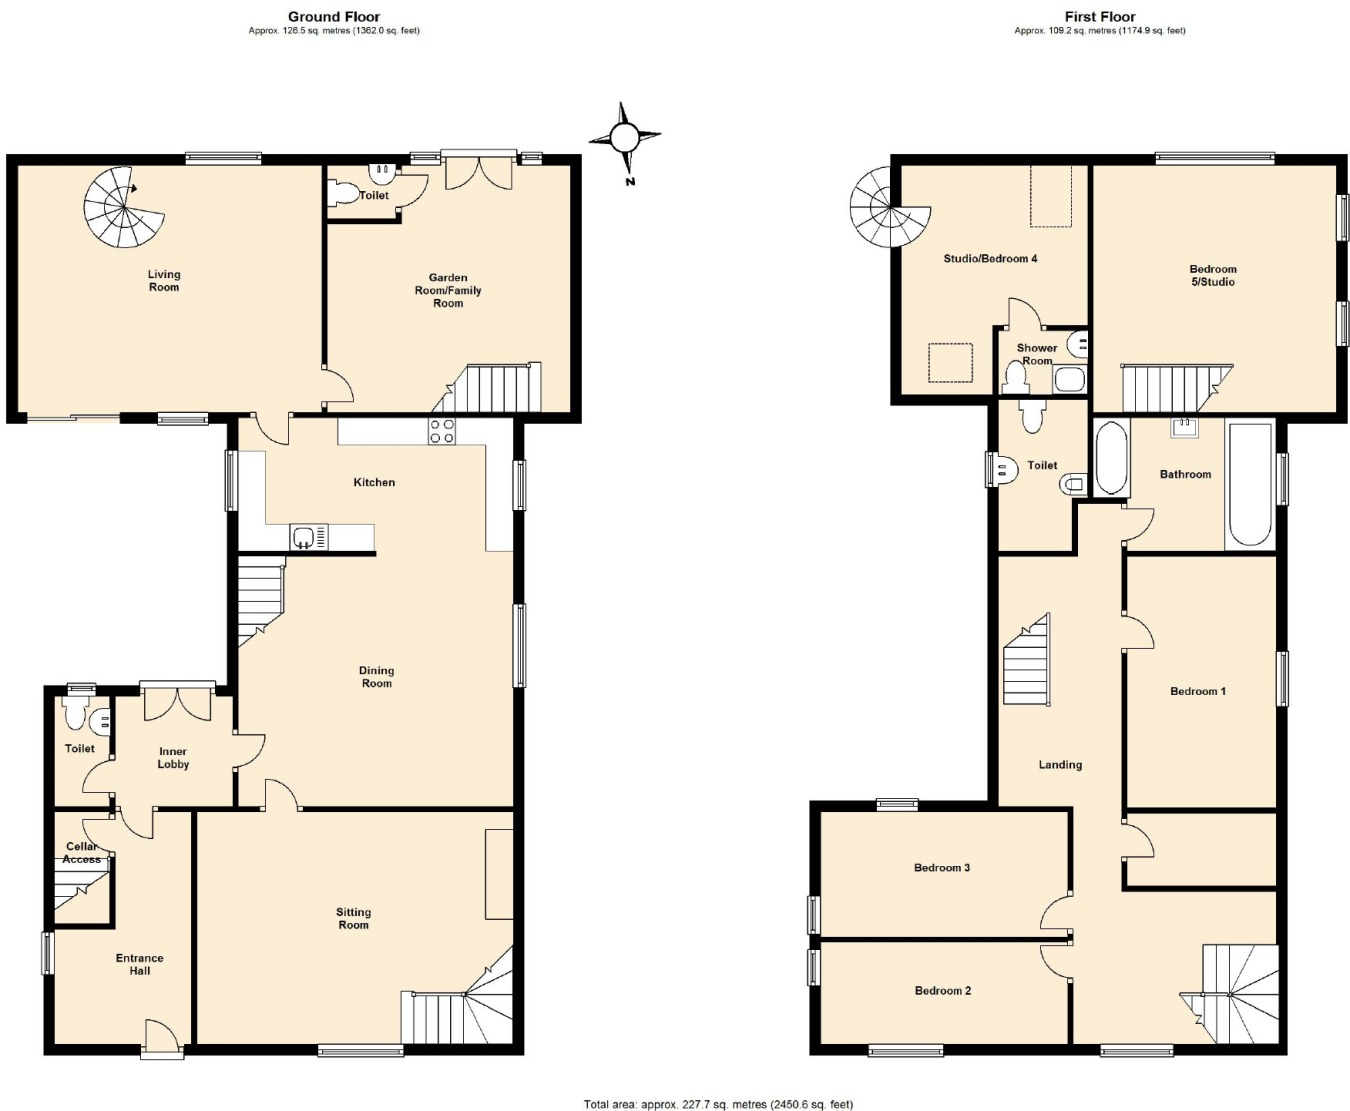 Charming Cool House Plans With Secret Rooms Images Best